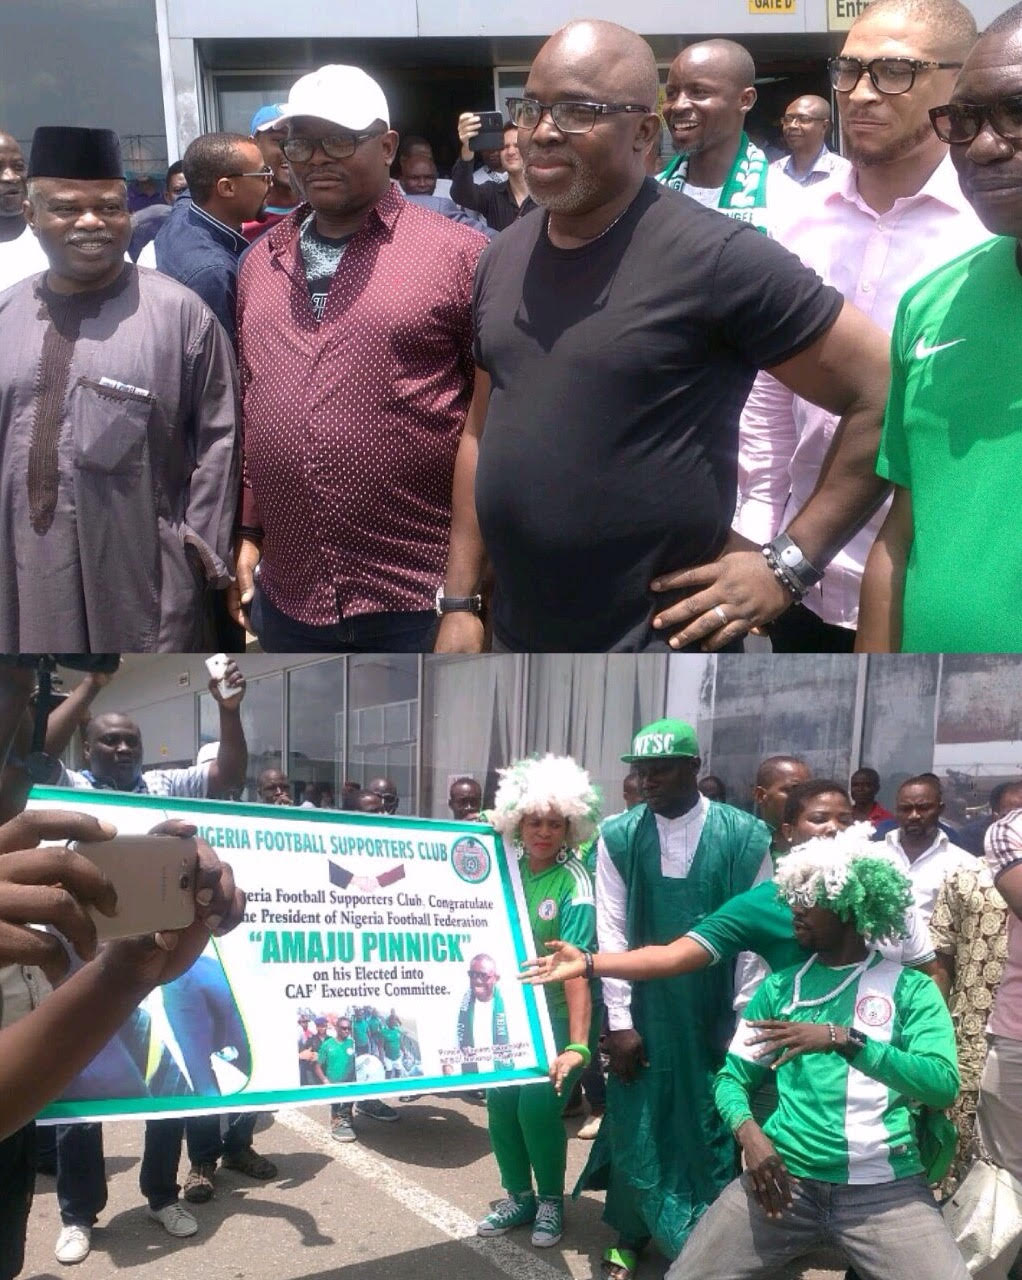 Pinnick: I'll Ensure Nigeria Play Active Role In African Football Development